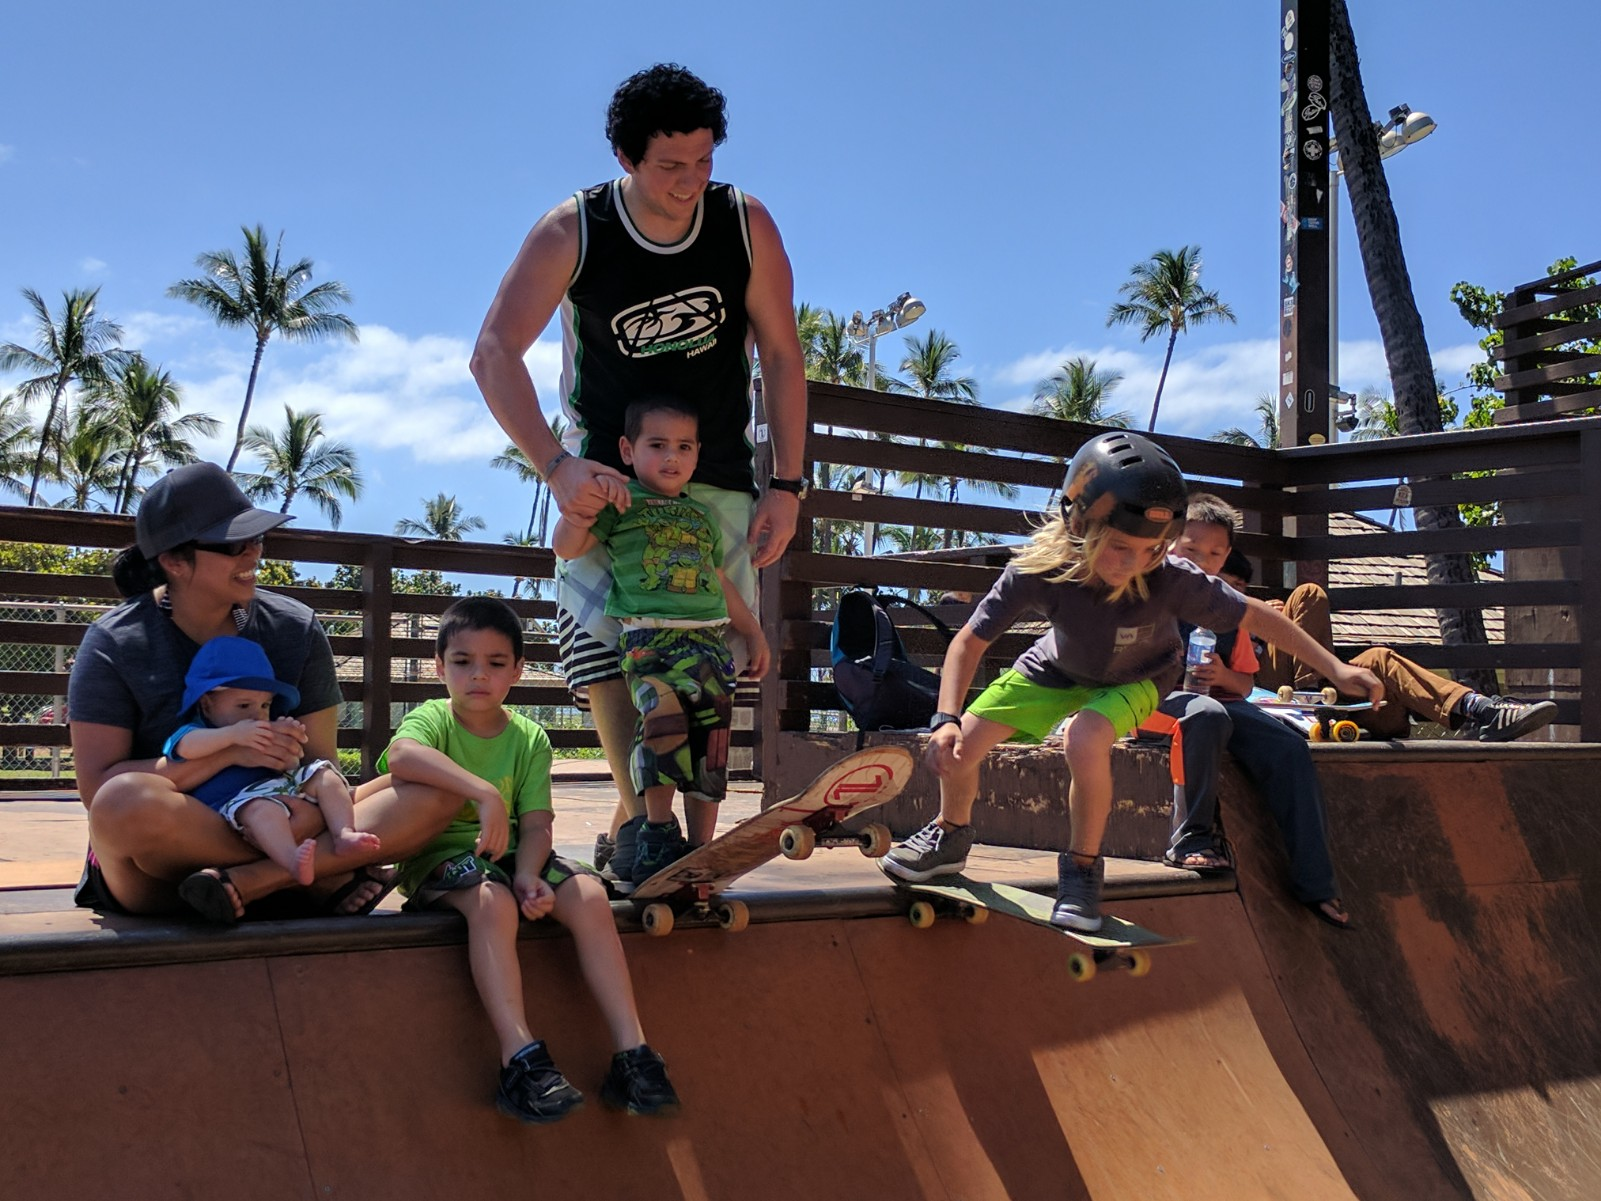 Thankful to see the Cardoso family before their big move from Maui! Dan & Gretchen, thanks for your service on the Board of Directors. So stoked you're bringing your kids up in righteousness:) Stoked on this drop-in, Kaleo!